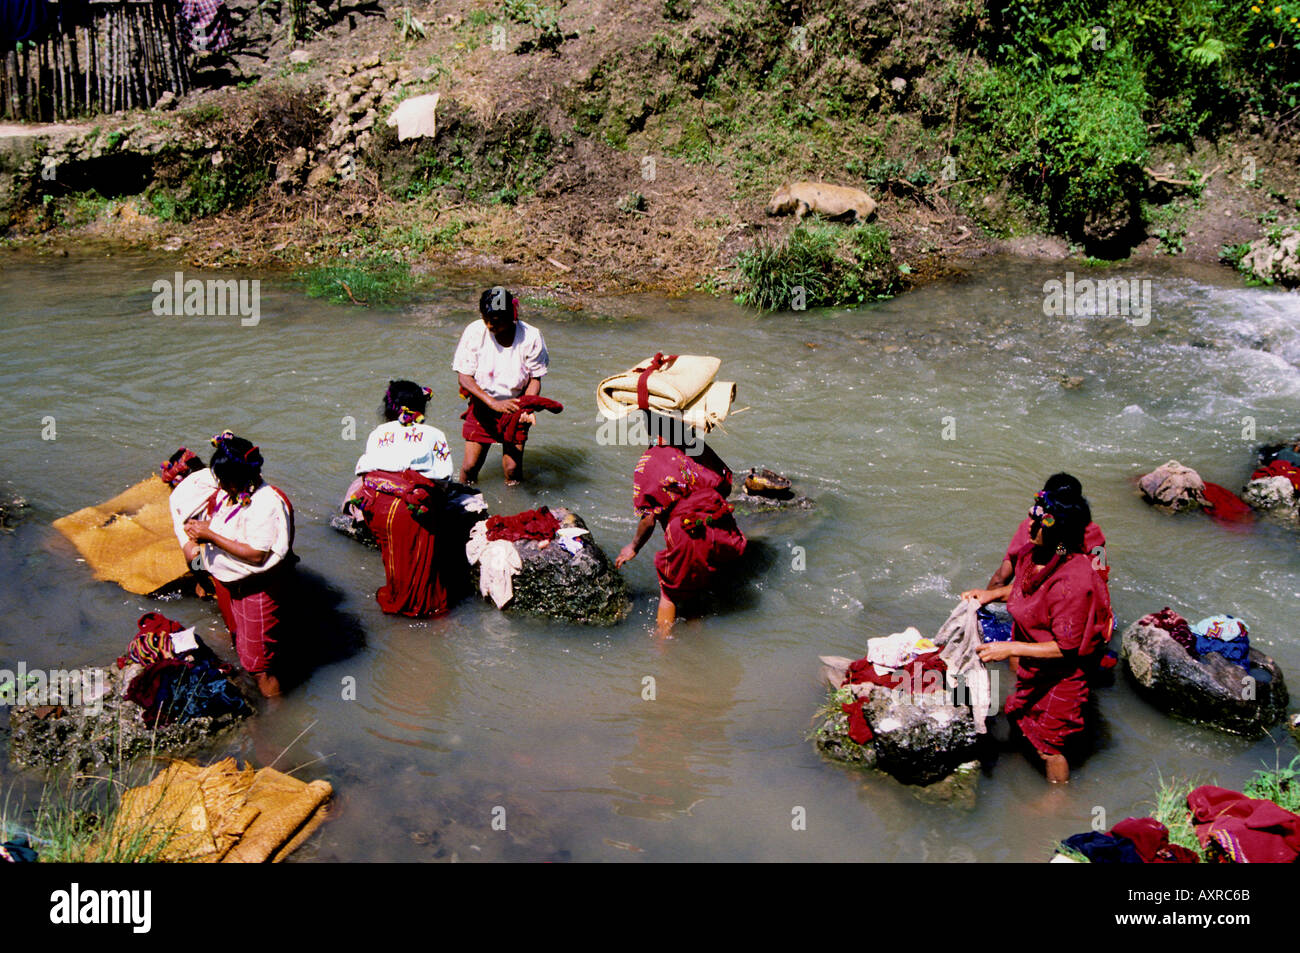 Indians washing clothes in river Chajul Guatemala - Stock Image